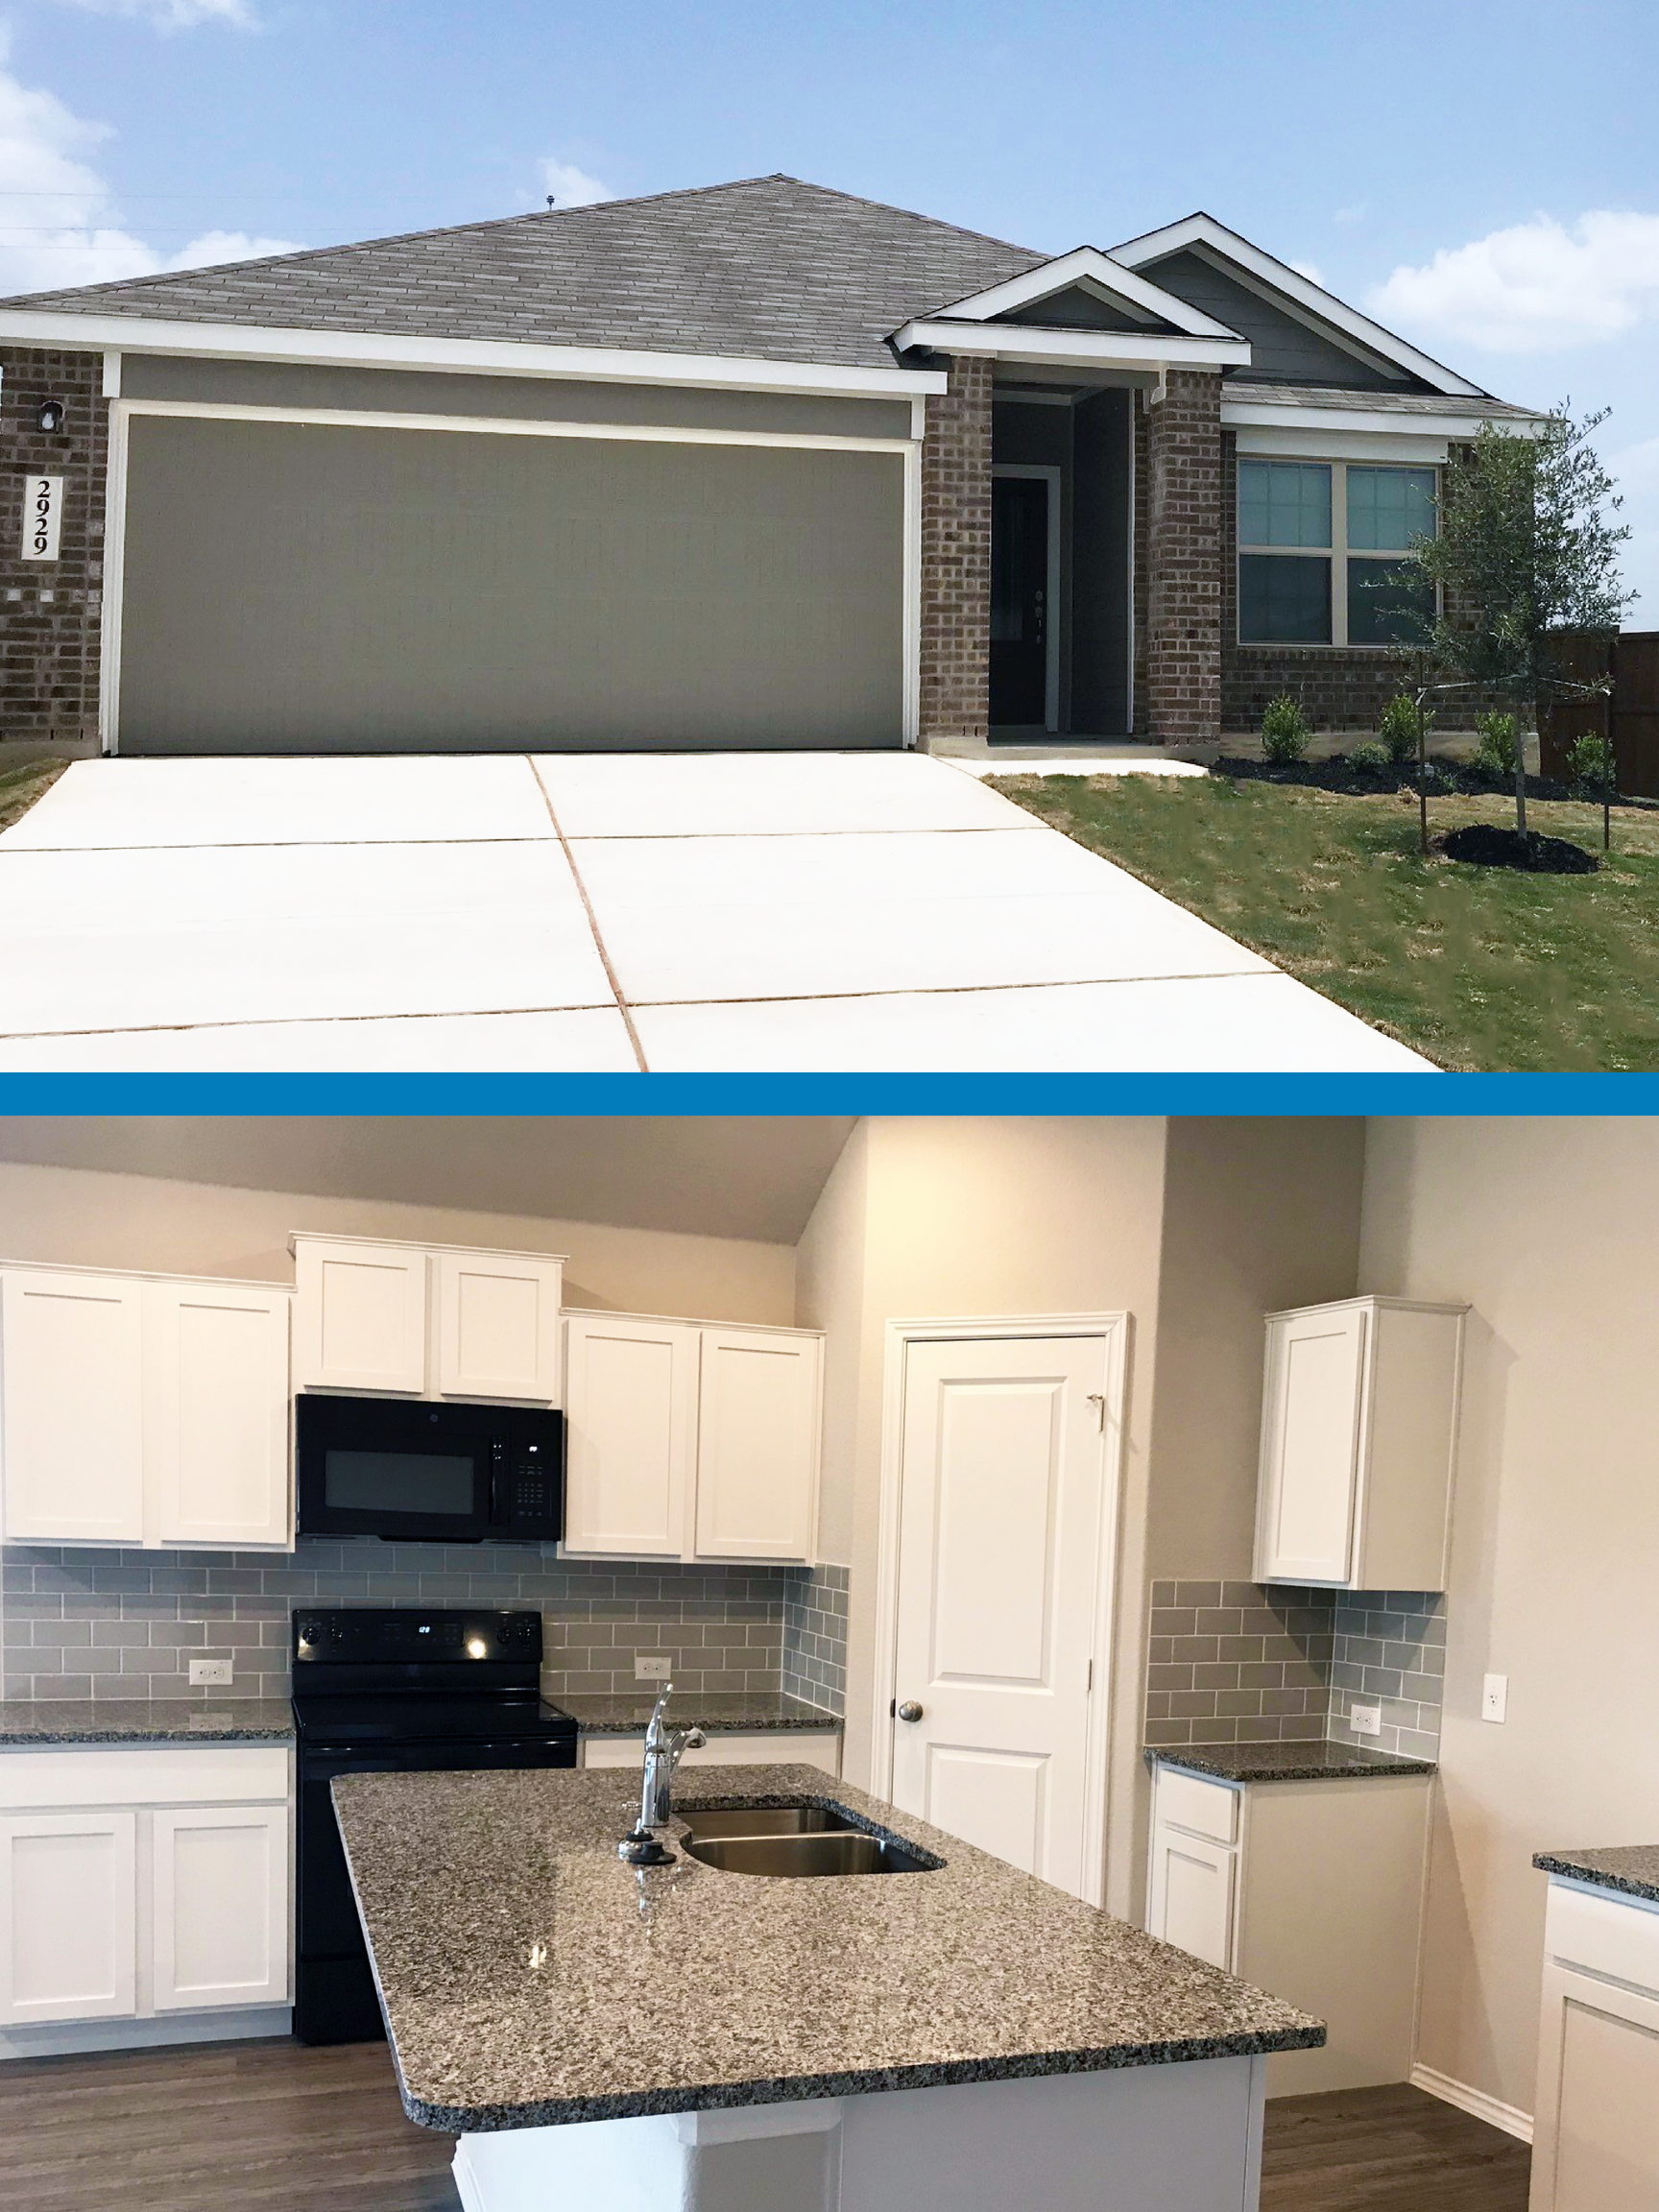 Open House Alert Join Us This Friday 7 27 From 12 4 Pm To Tour This Beautiful Lennar Home In Our Glencrest Community Home Builders New Homes Lennar